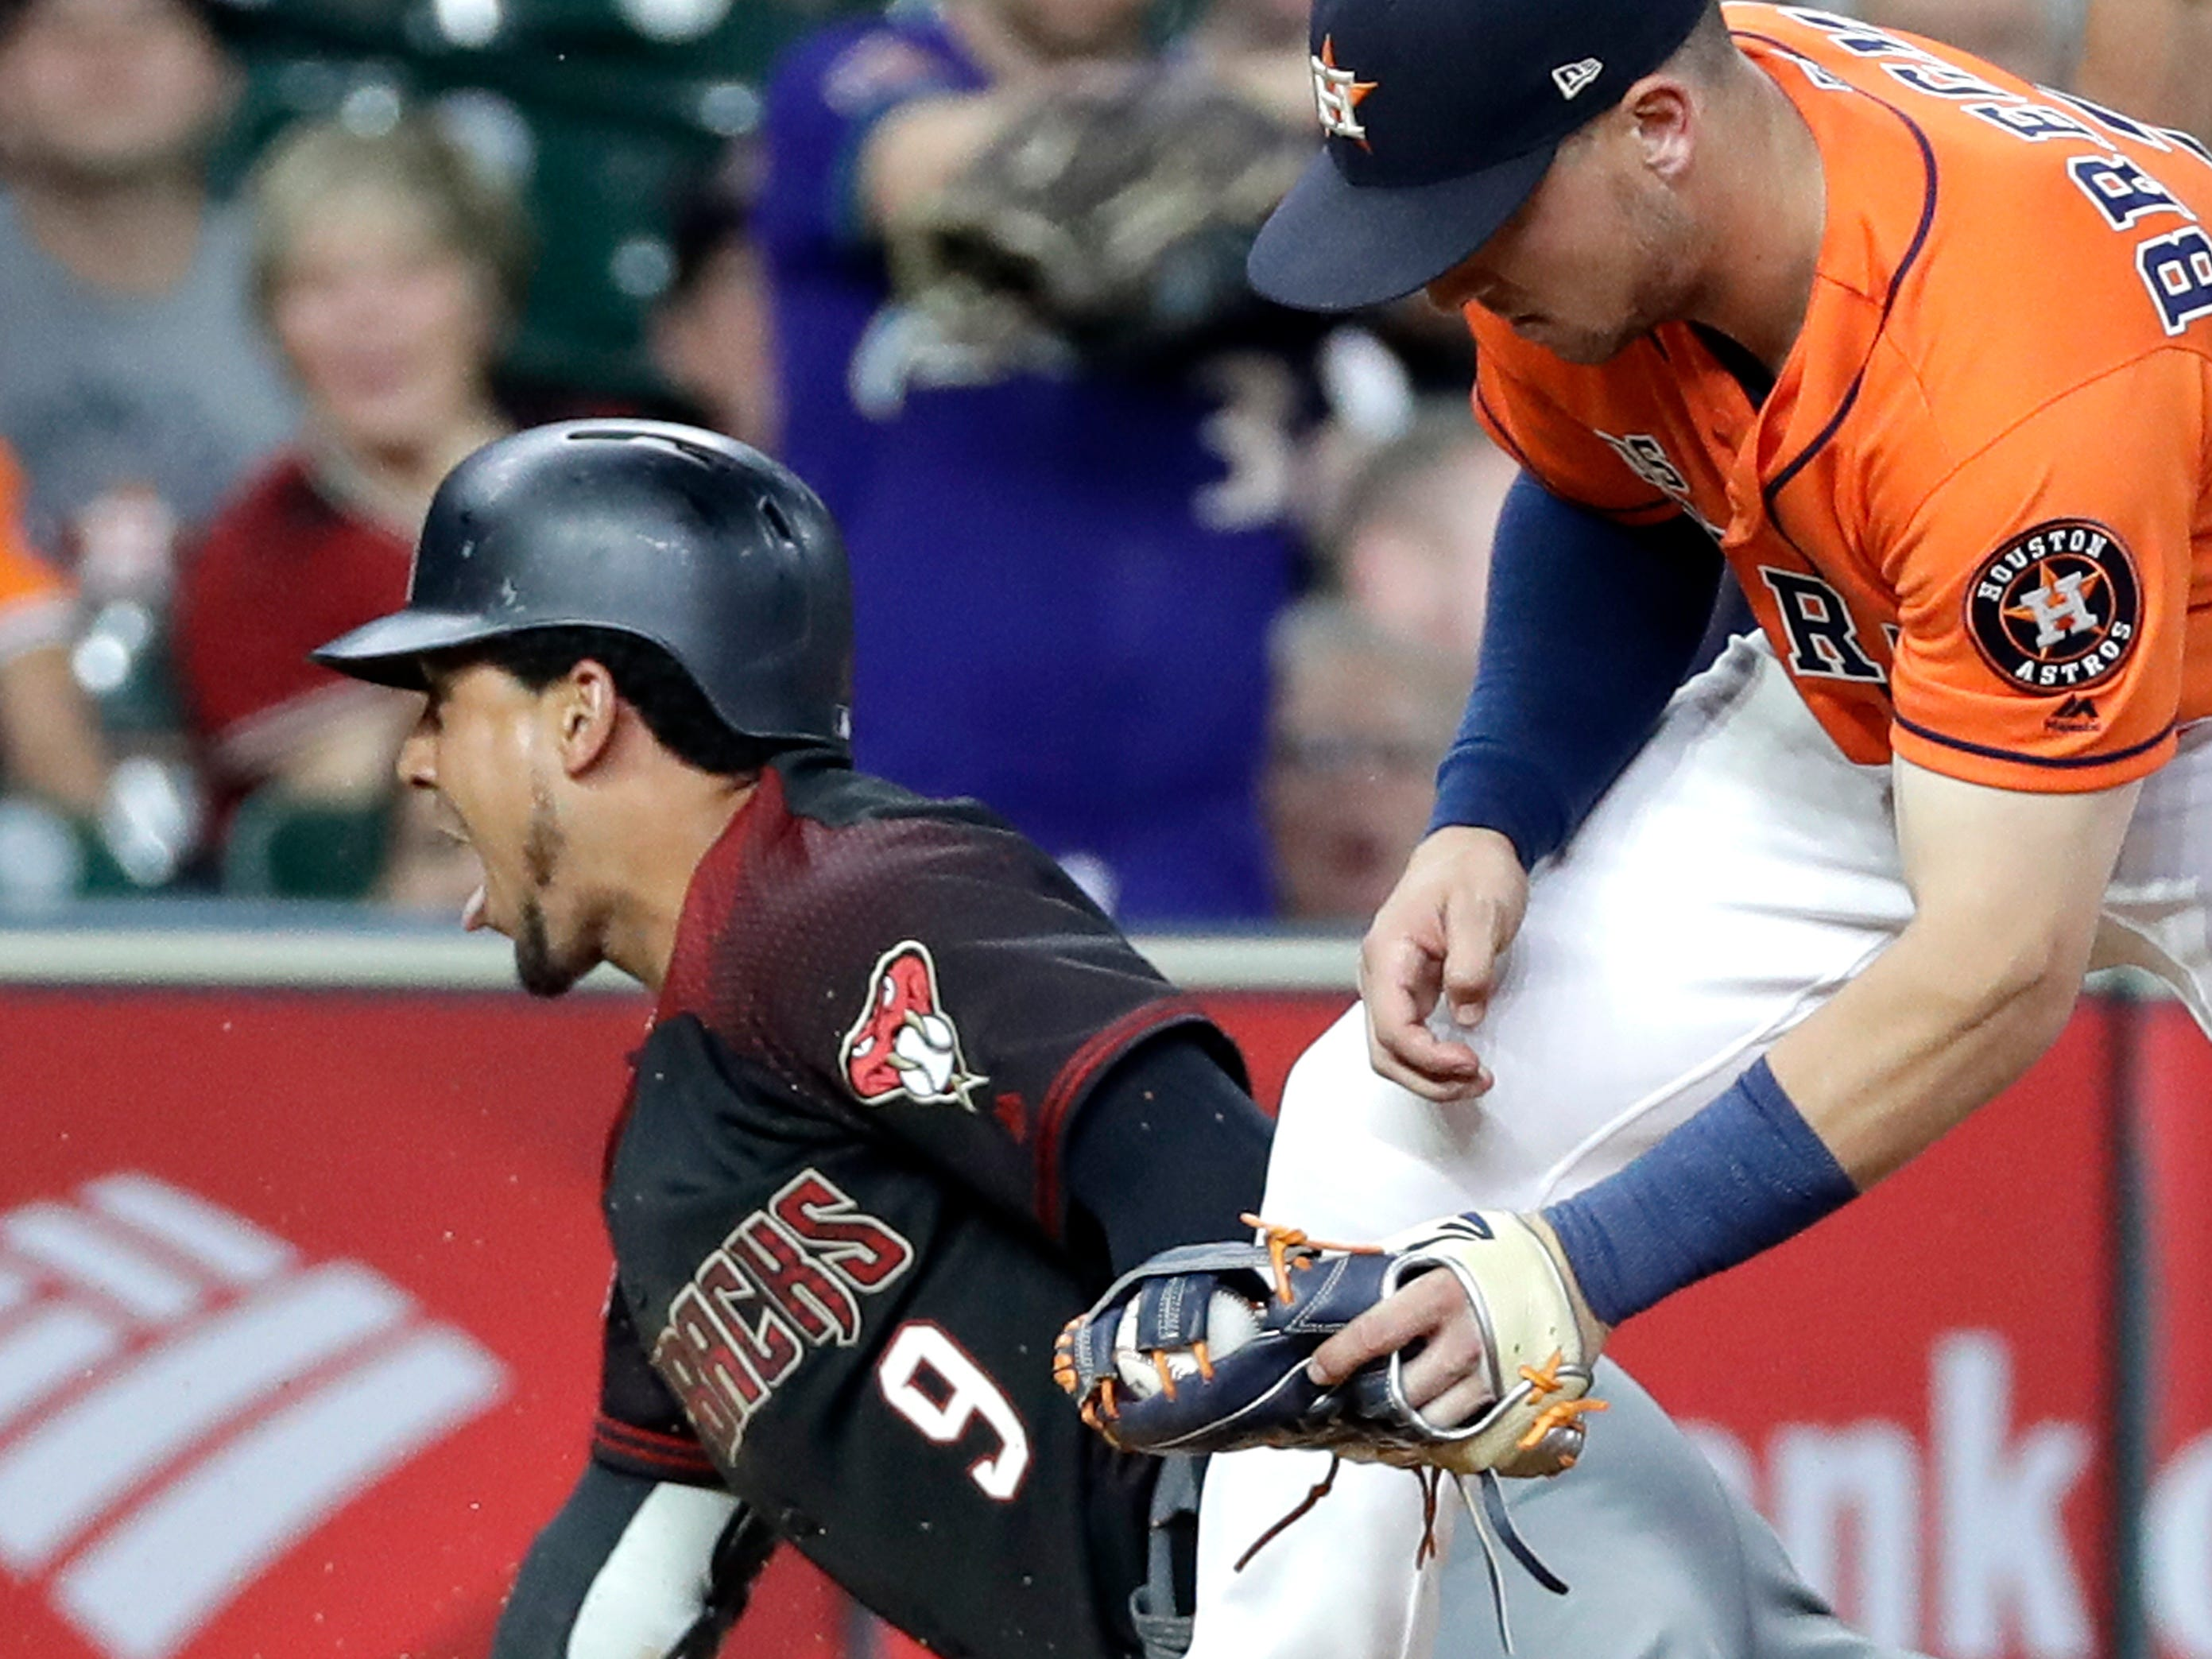 Arizona Diamondbacks' Jon Jay (9) slides safely into third after hitting an RBI triple as Houston Astros third baseman Alex Bregman reaches to tag him during the eighth inning of a baseball game Friday, Sept. 14, 2018, in Houston. (AP Photo/David J. Phillip)